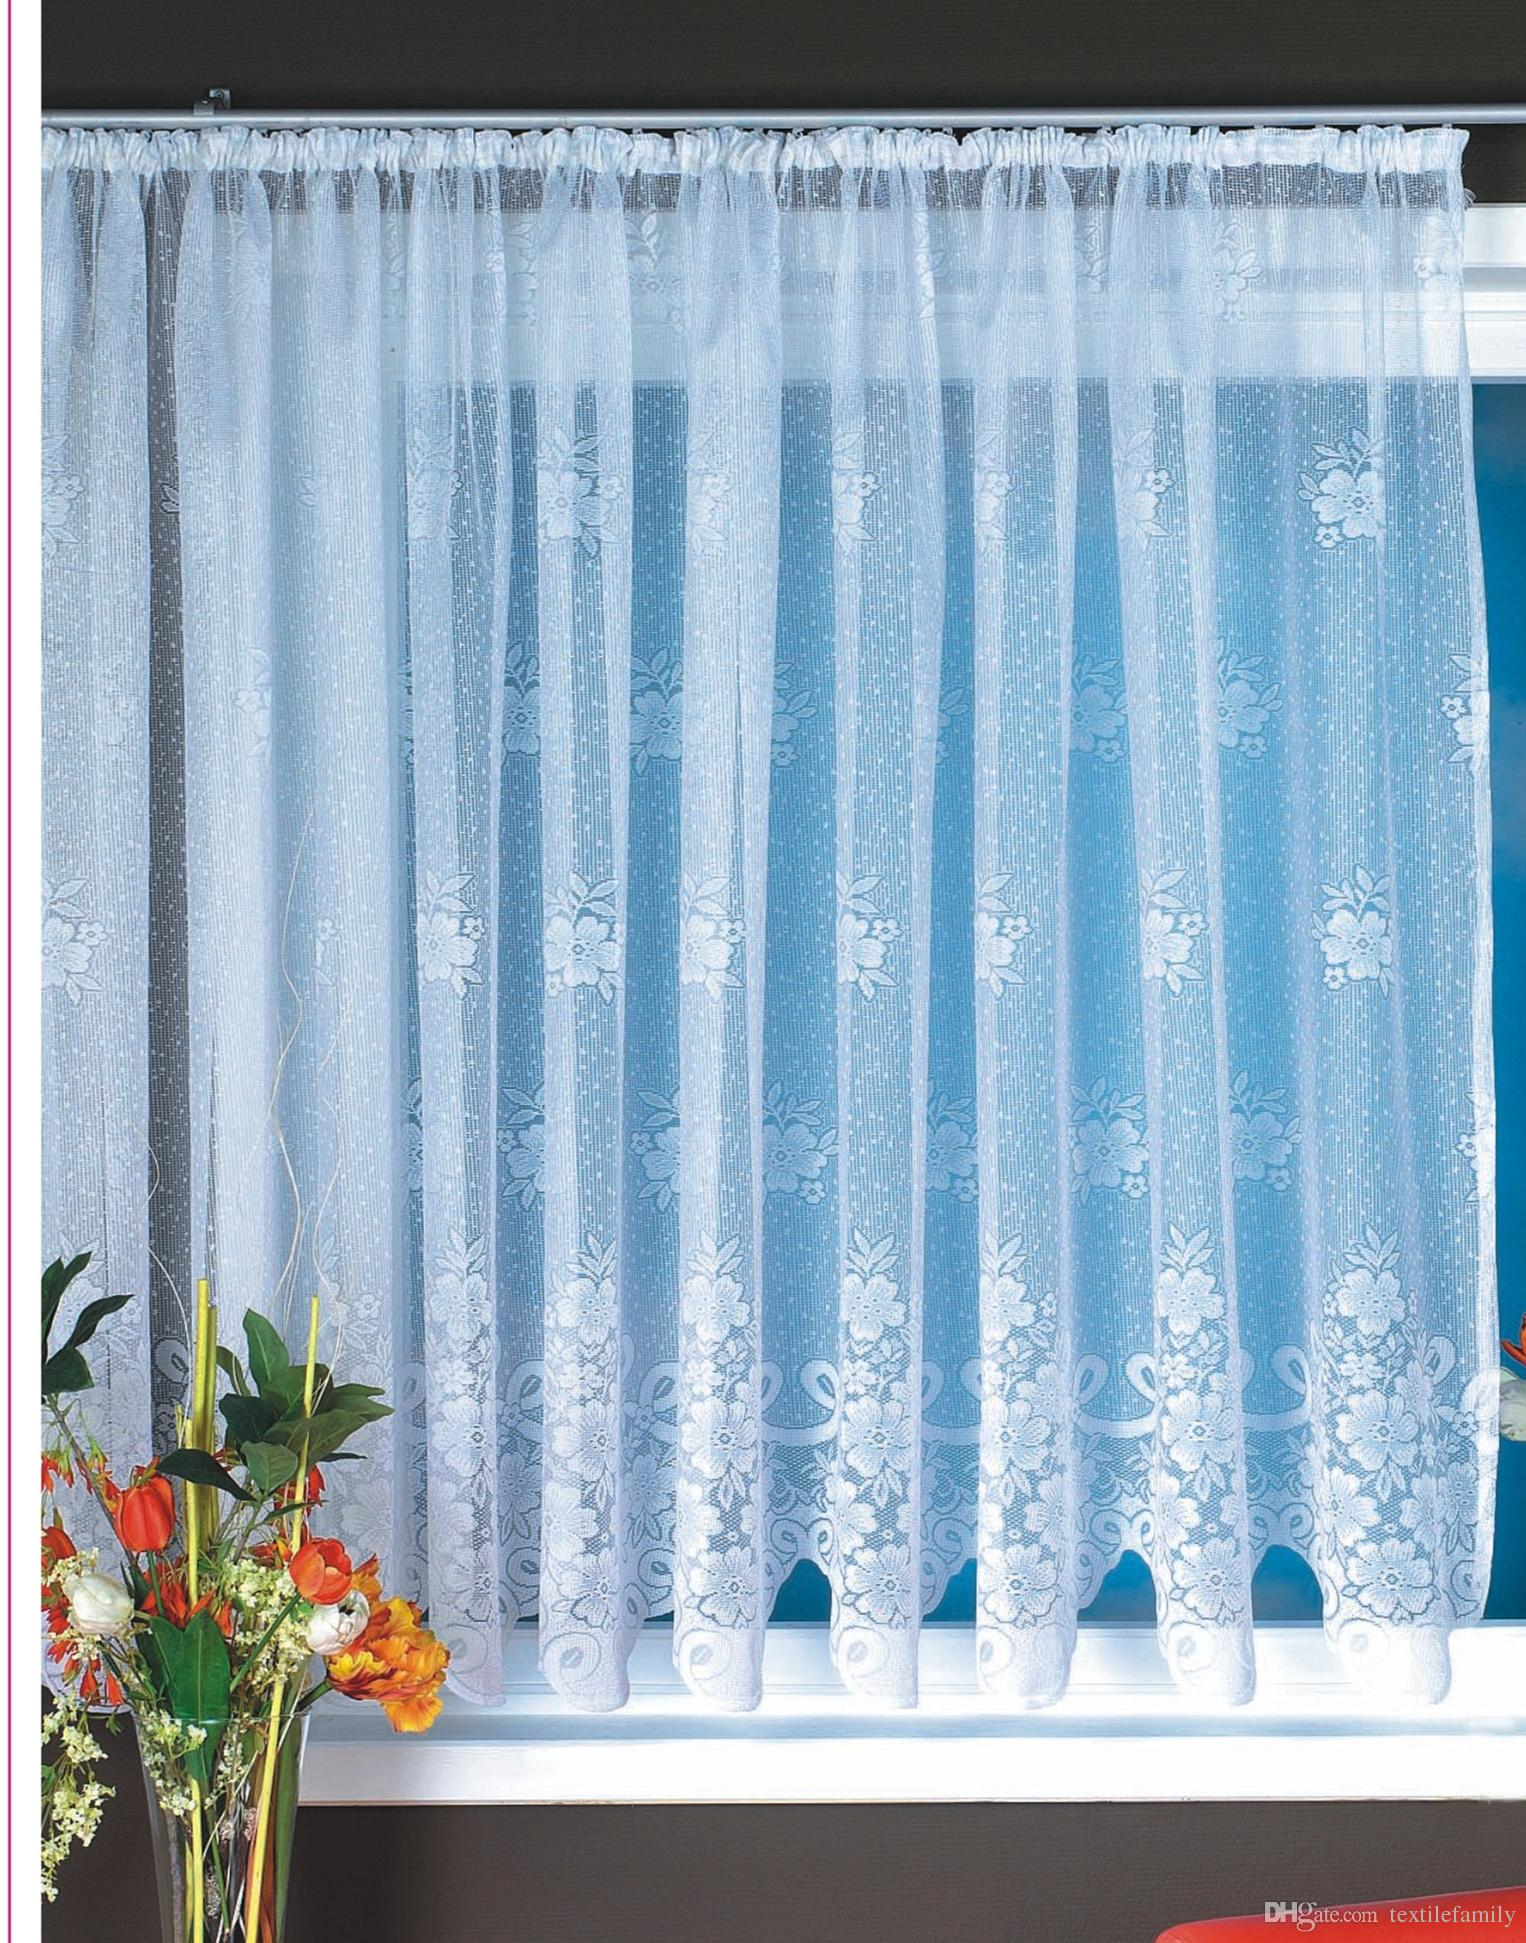 on sale polyester lace big window curtains for lace bay curtain net bedroom elegant curtain elegant curtain bay curtain net curtain online with 1082piece